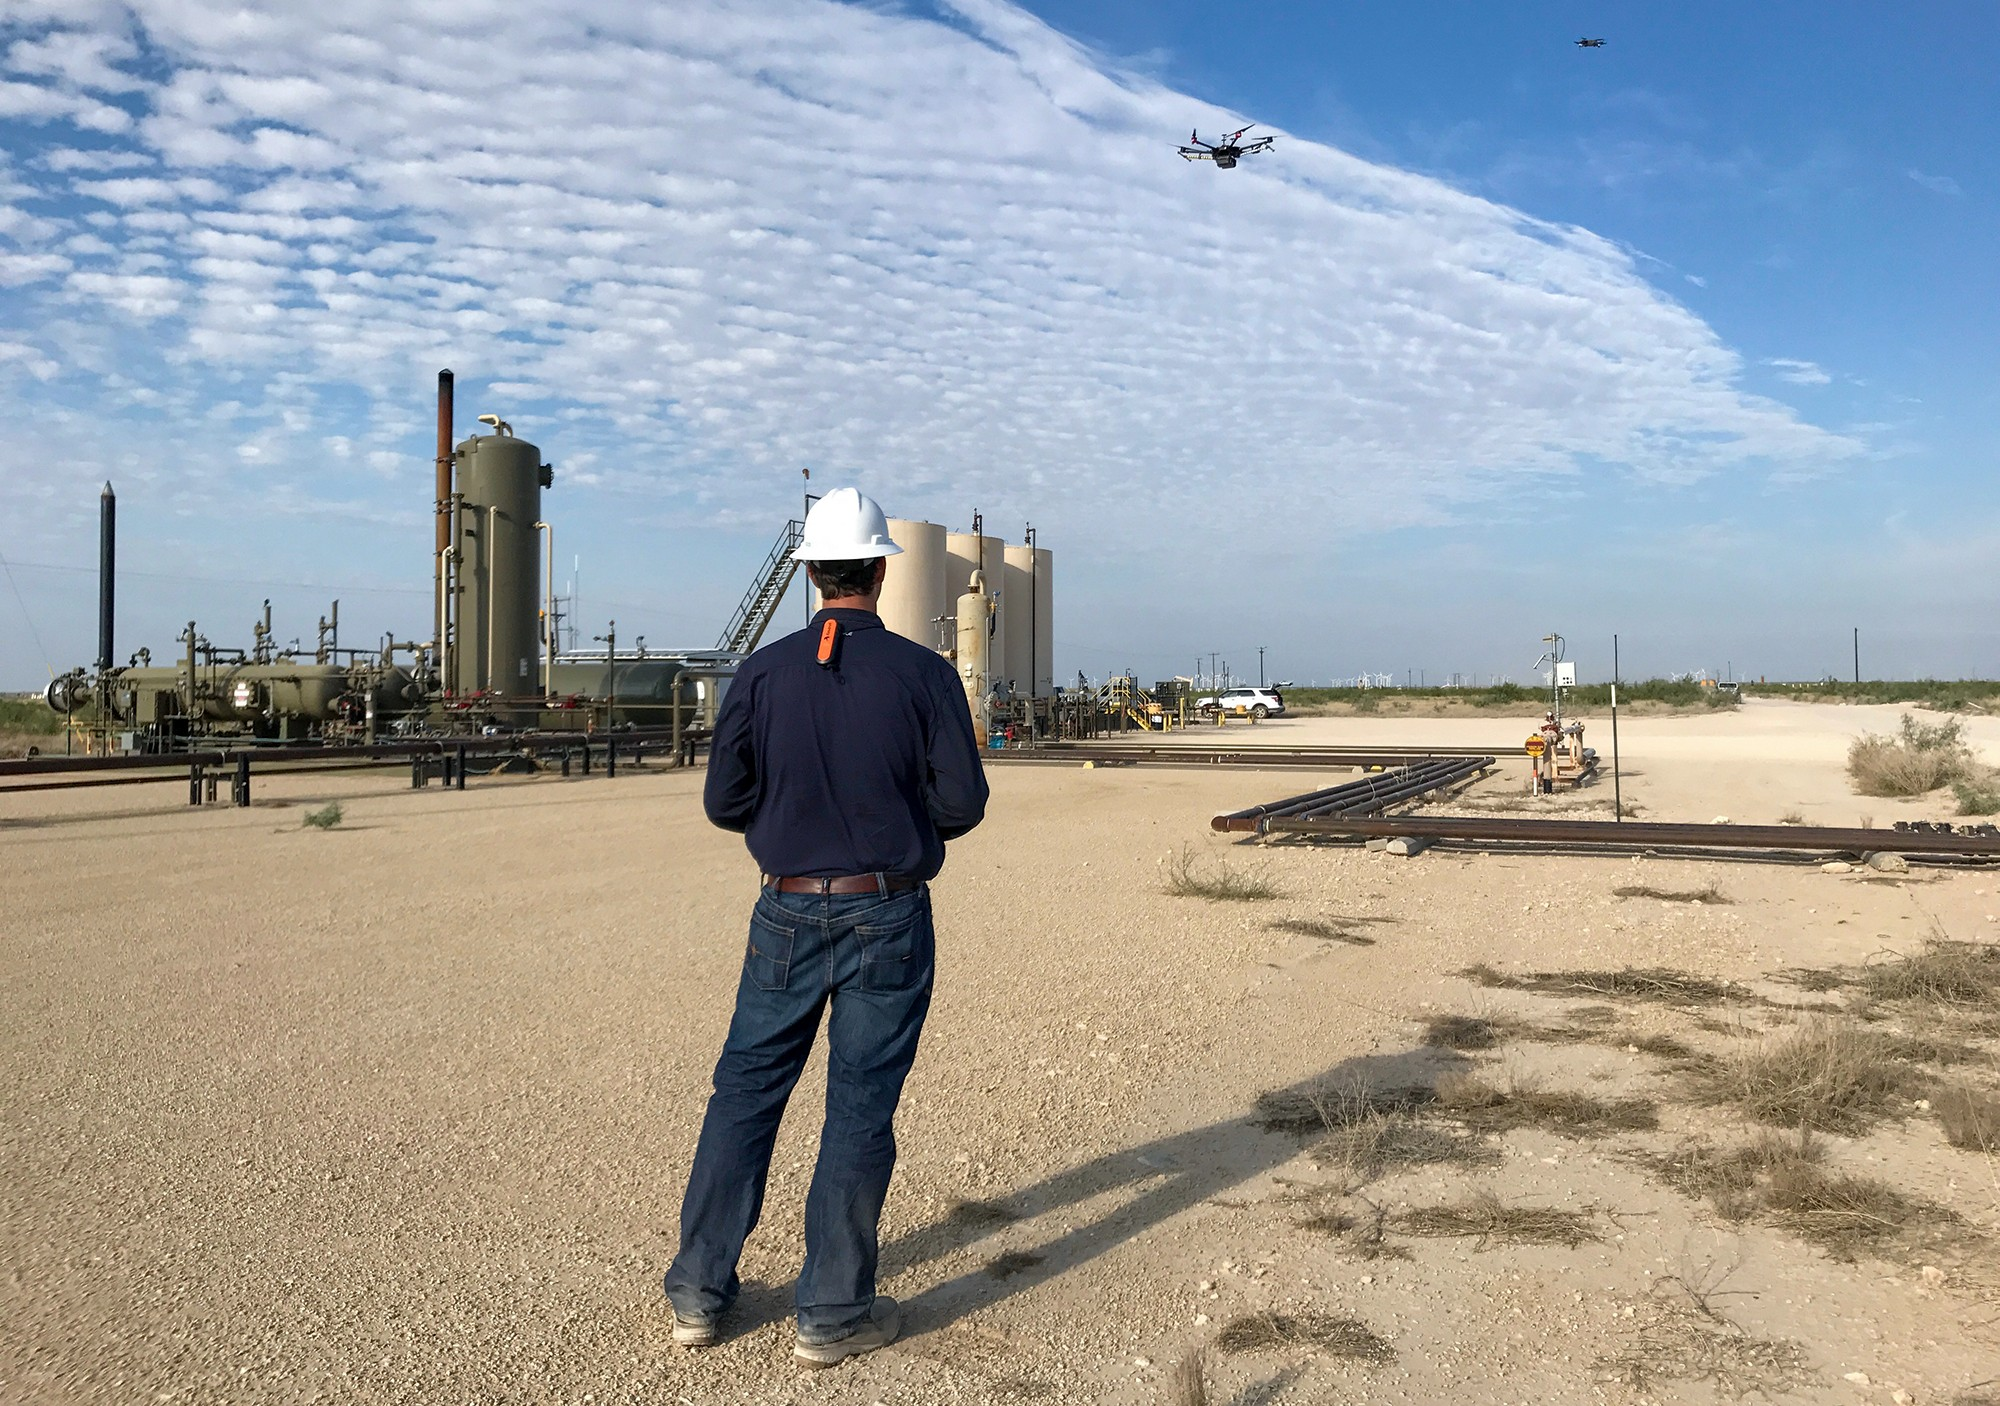 Worker wearing hardhat operating drone with tanks in background